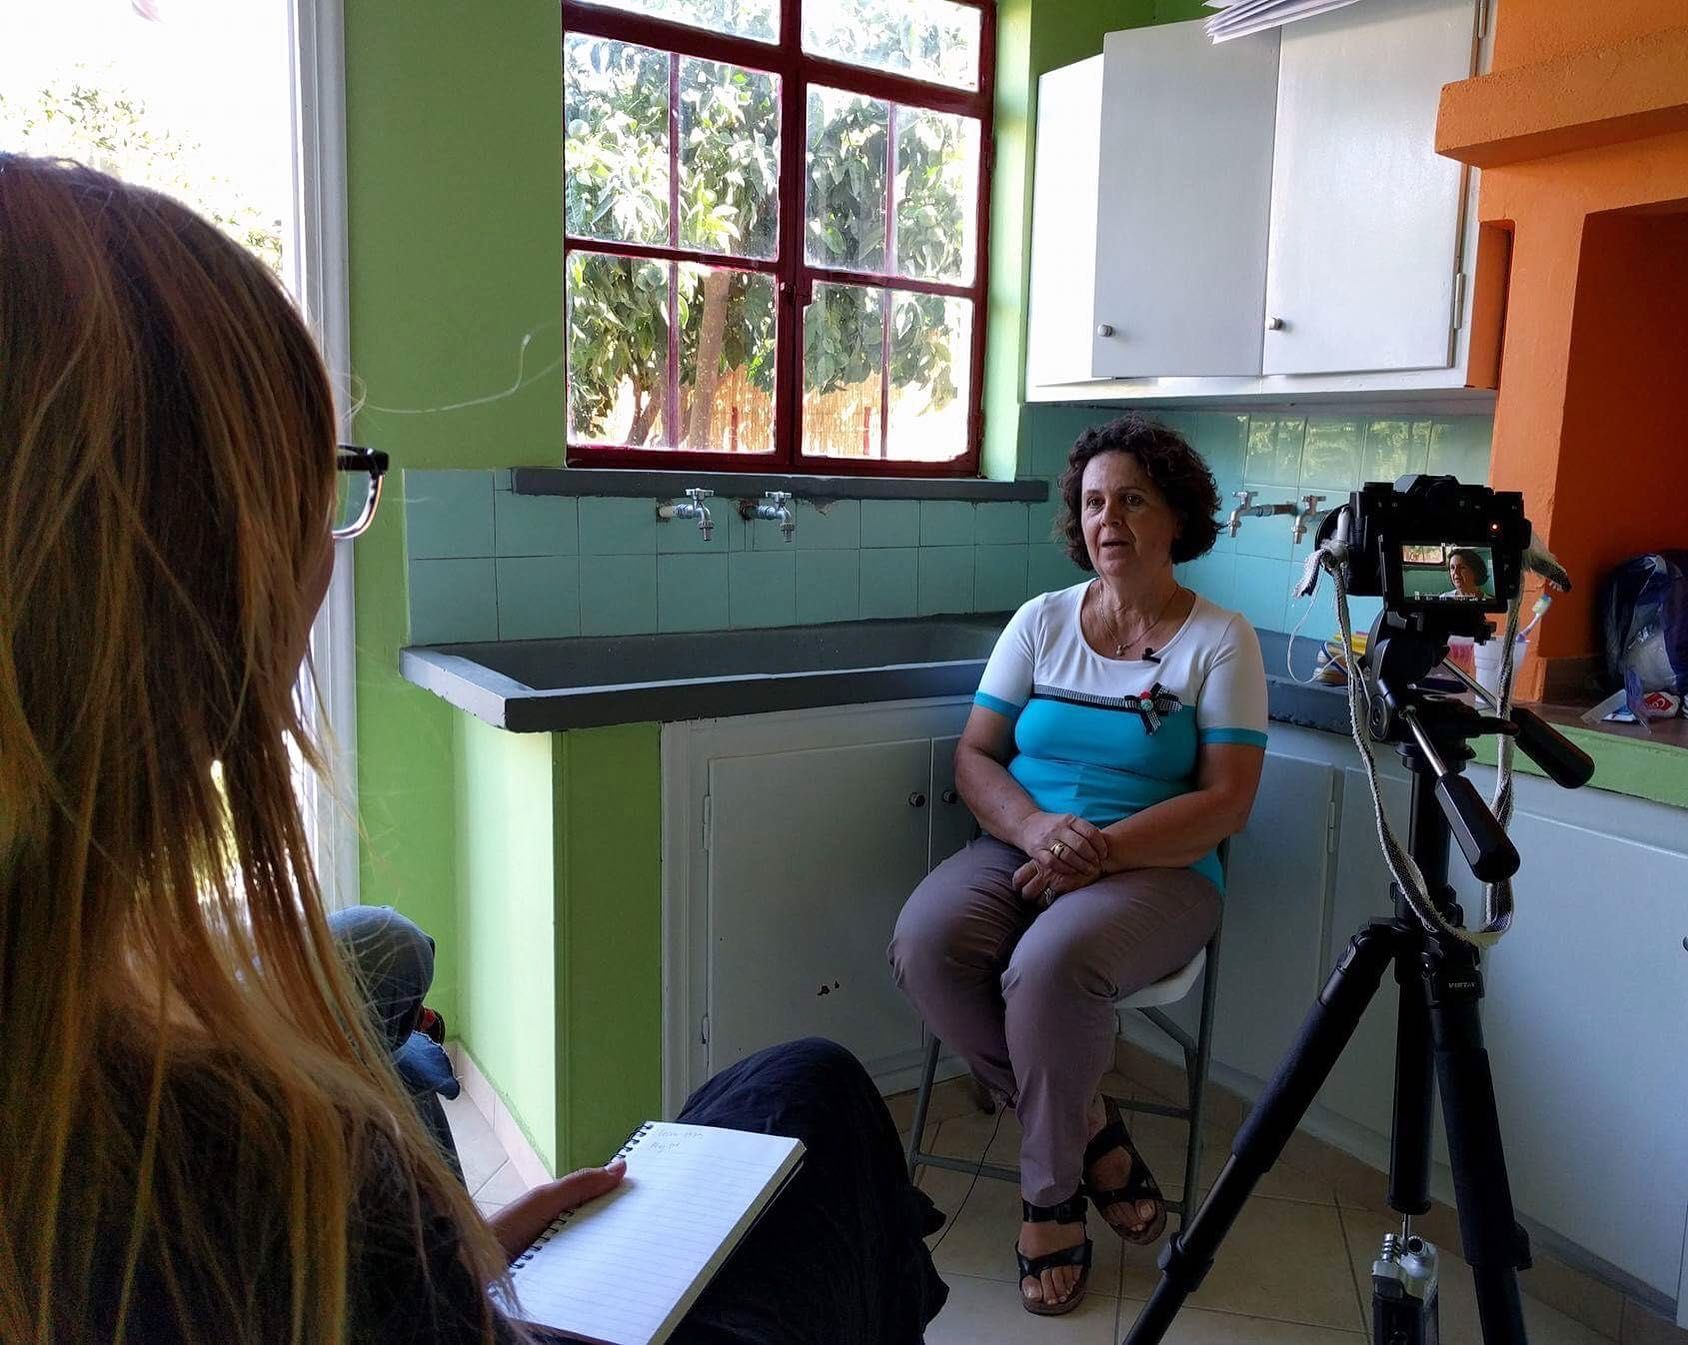 A woman sits in the corner of her kitchen being interviewed. A camera on a tripod is in front of her, with another woman sitting in the foreground holding a notepad.